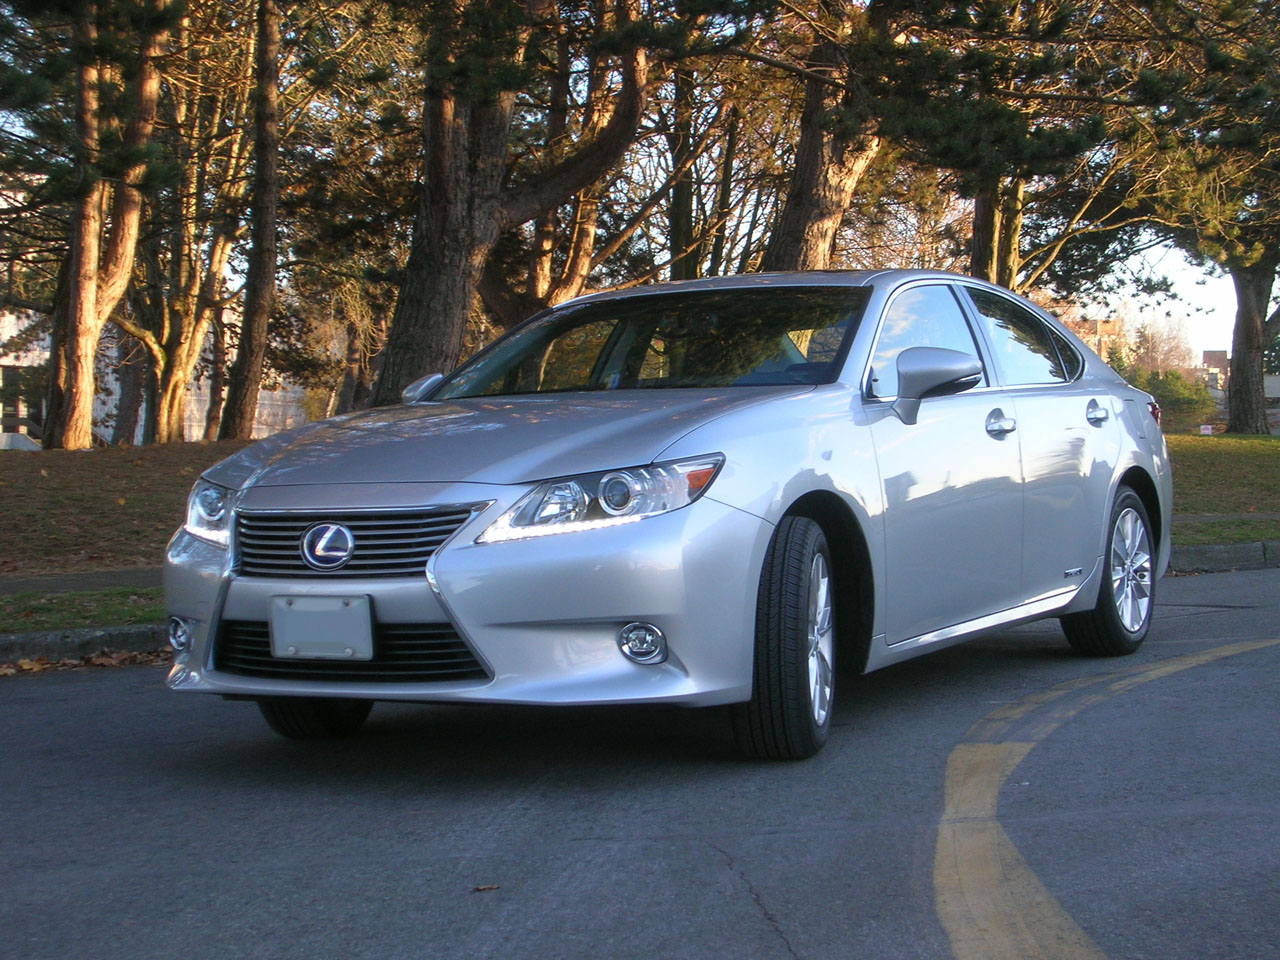 2014 lexus es 300h road test review carcostcanada. Black Bedroom Furniture Sets. Home Design Ideas